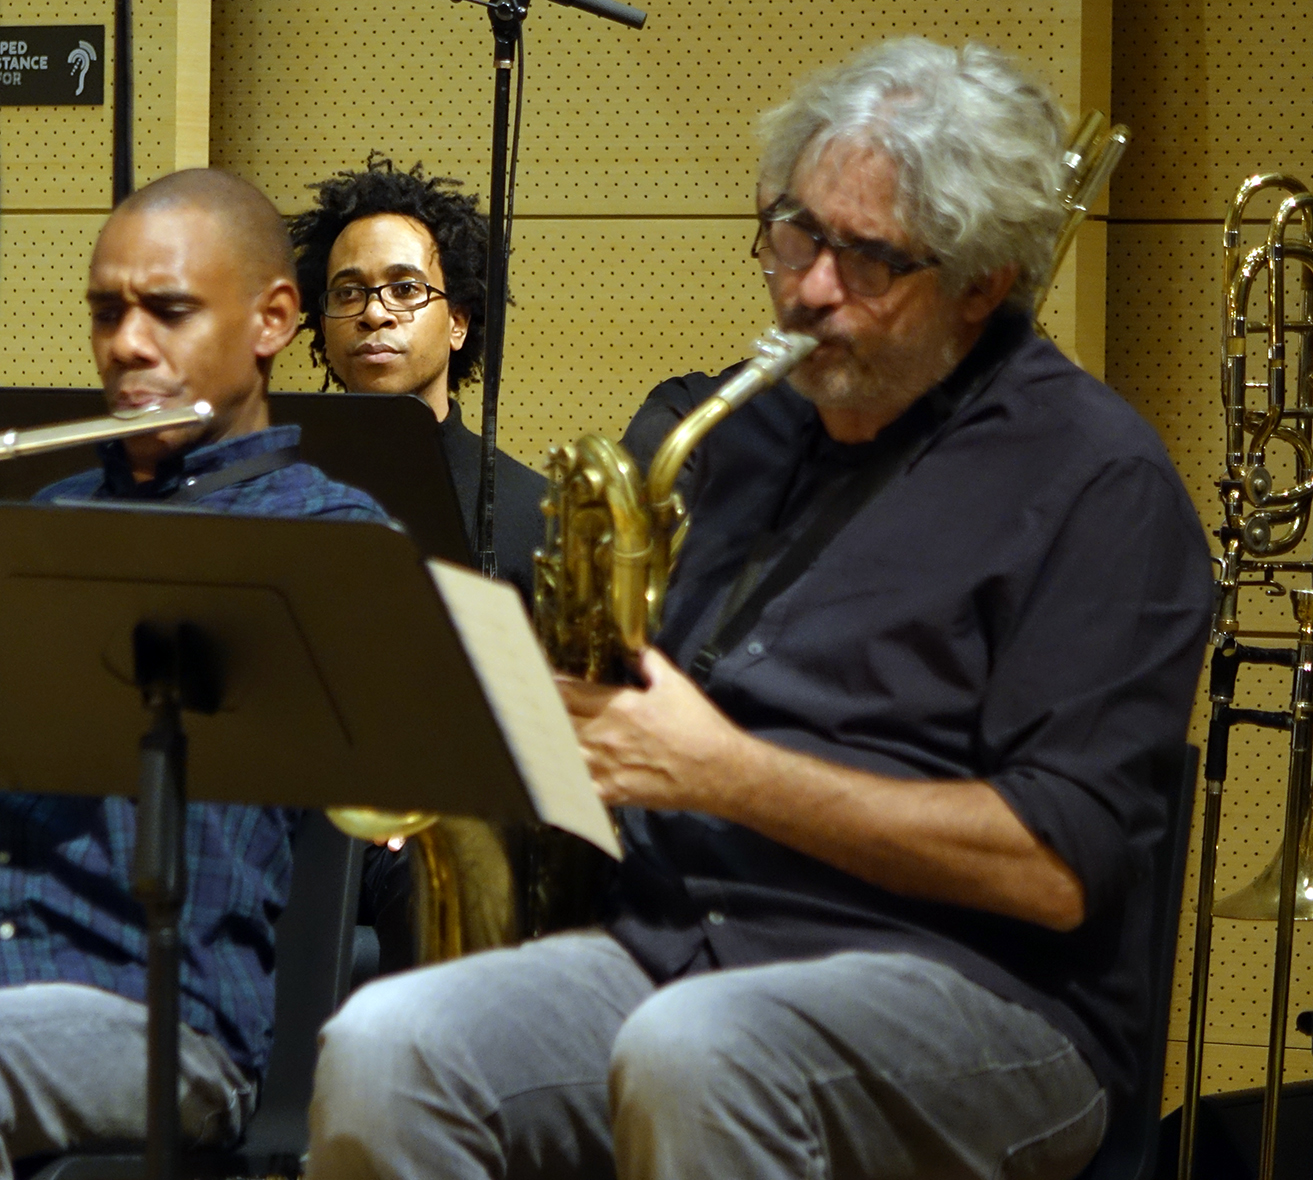 Brian Settles, Jonathan Finlayson, & Tim Berne at NYC Winter JazzFest 2016